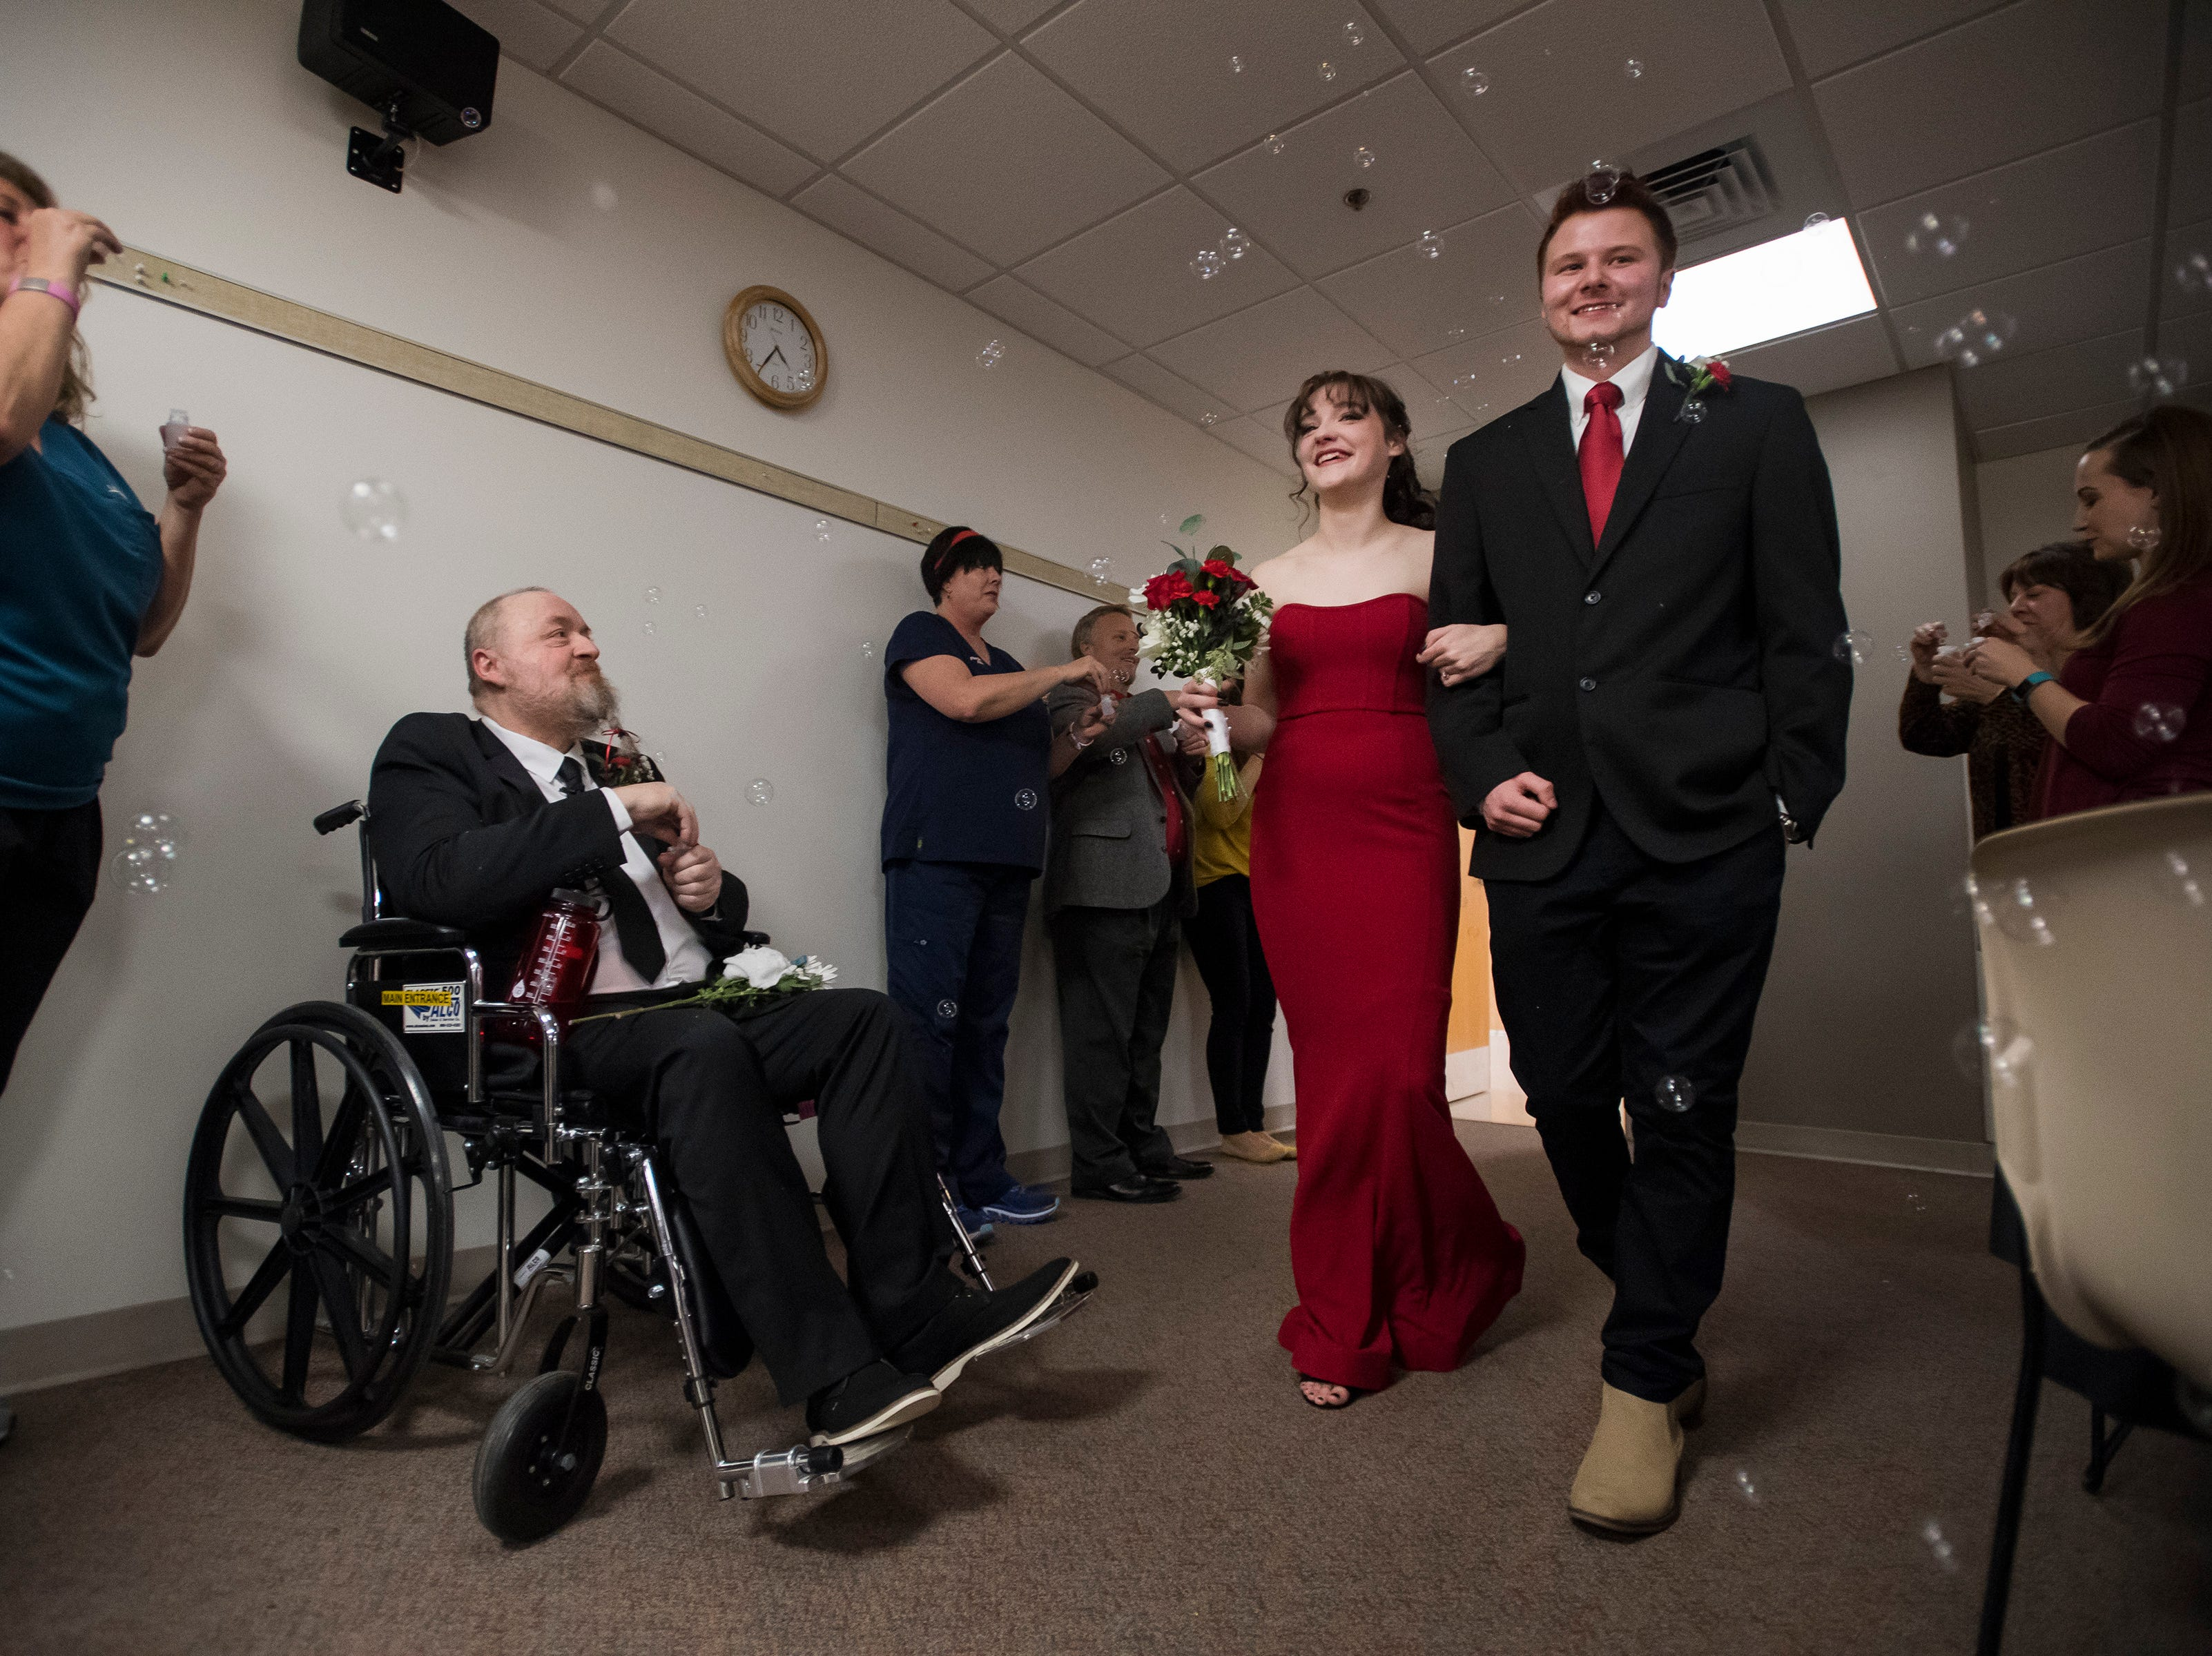 Newlyweds James and Grace Christian Walk into the venue for their reception past UCHealth employees and family members blowing bubbles and Grace's father Paul Justice, left, on Thursday, Feb. 14, 2019, at UCHealth Poudre Valley Hospital in Fort Collins, Colo.